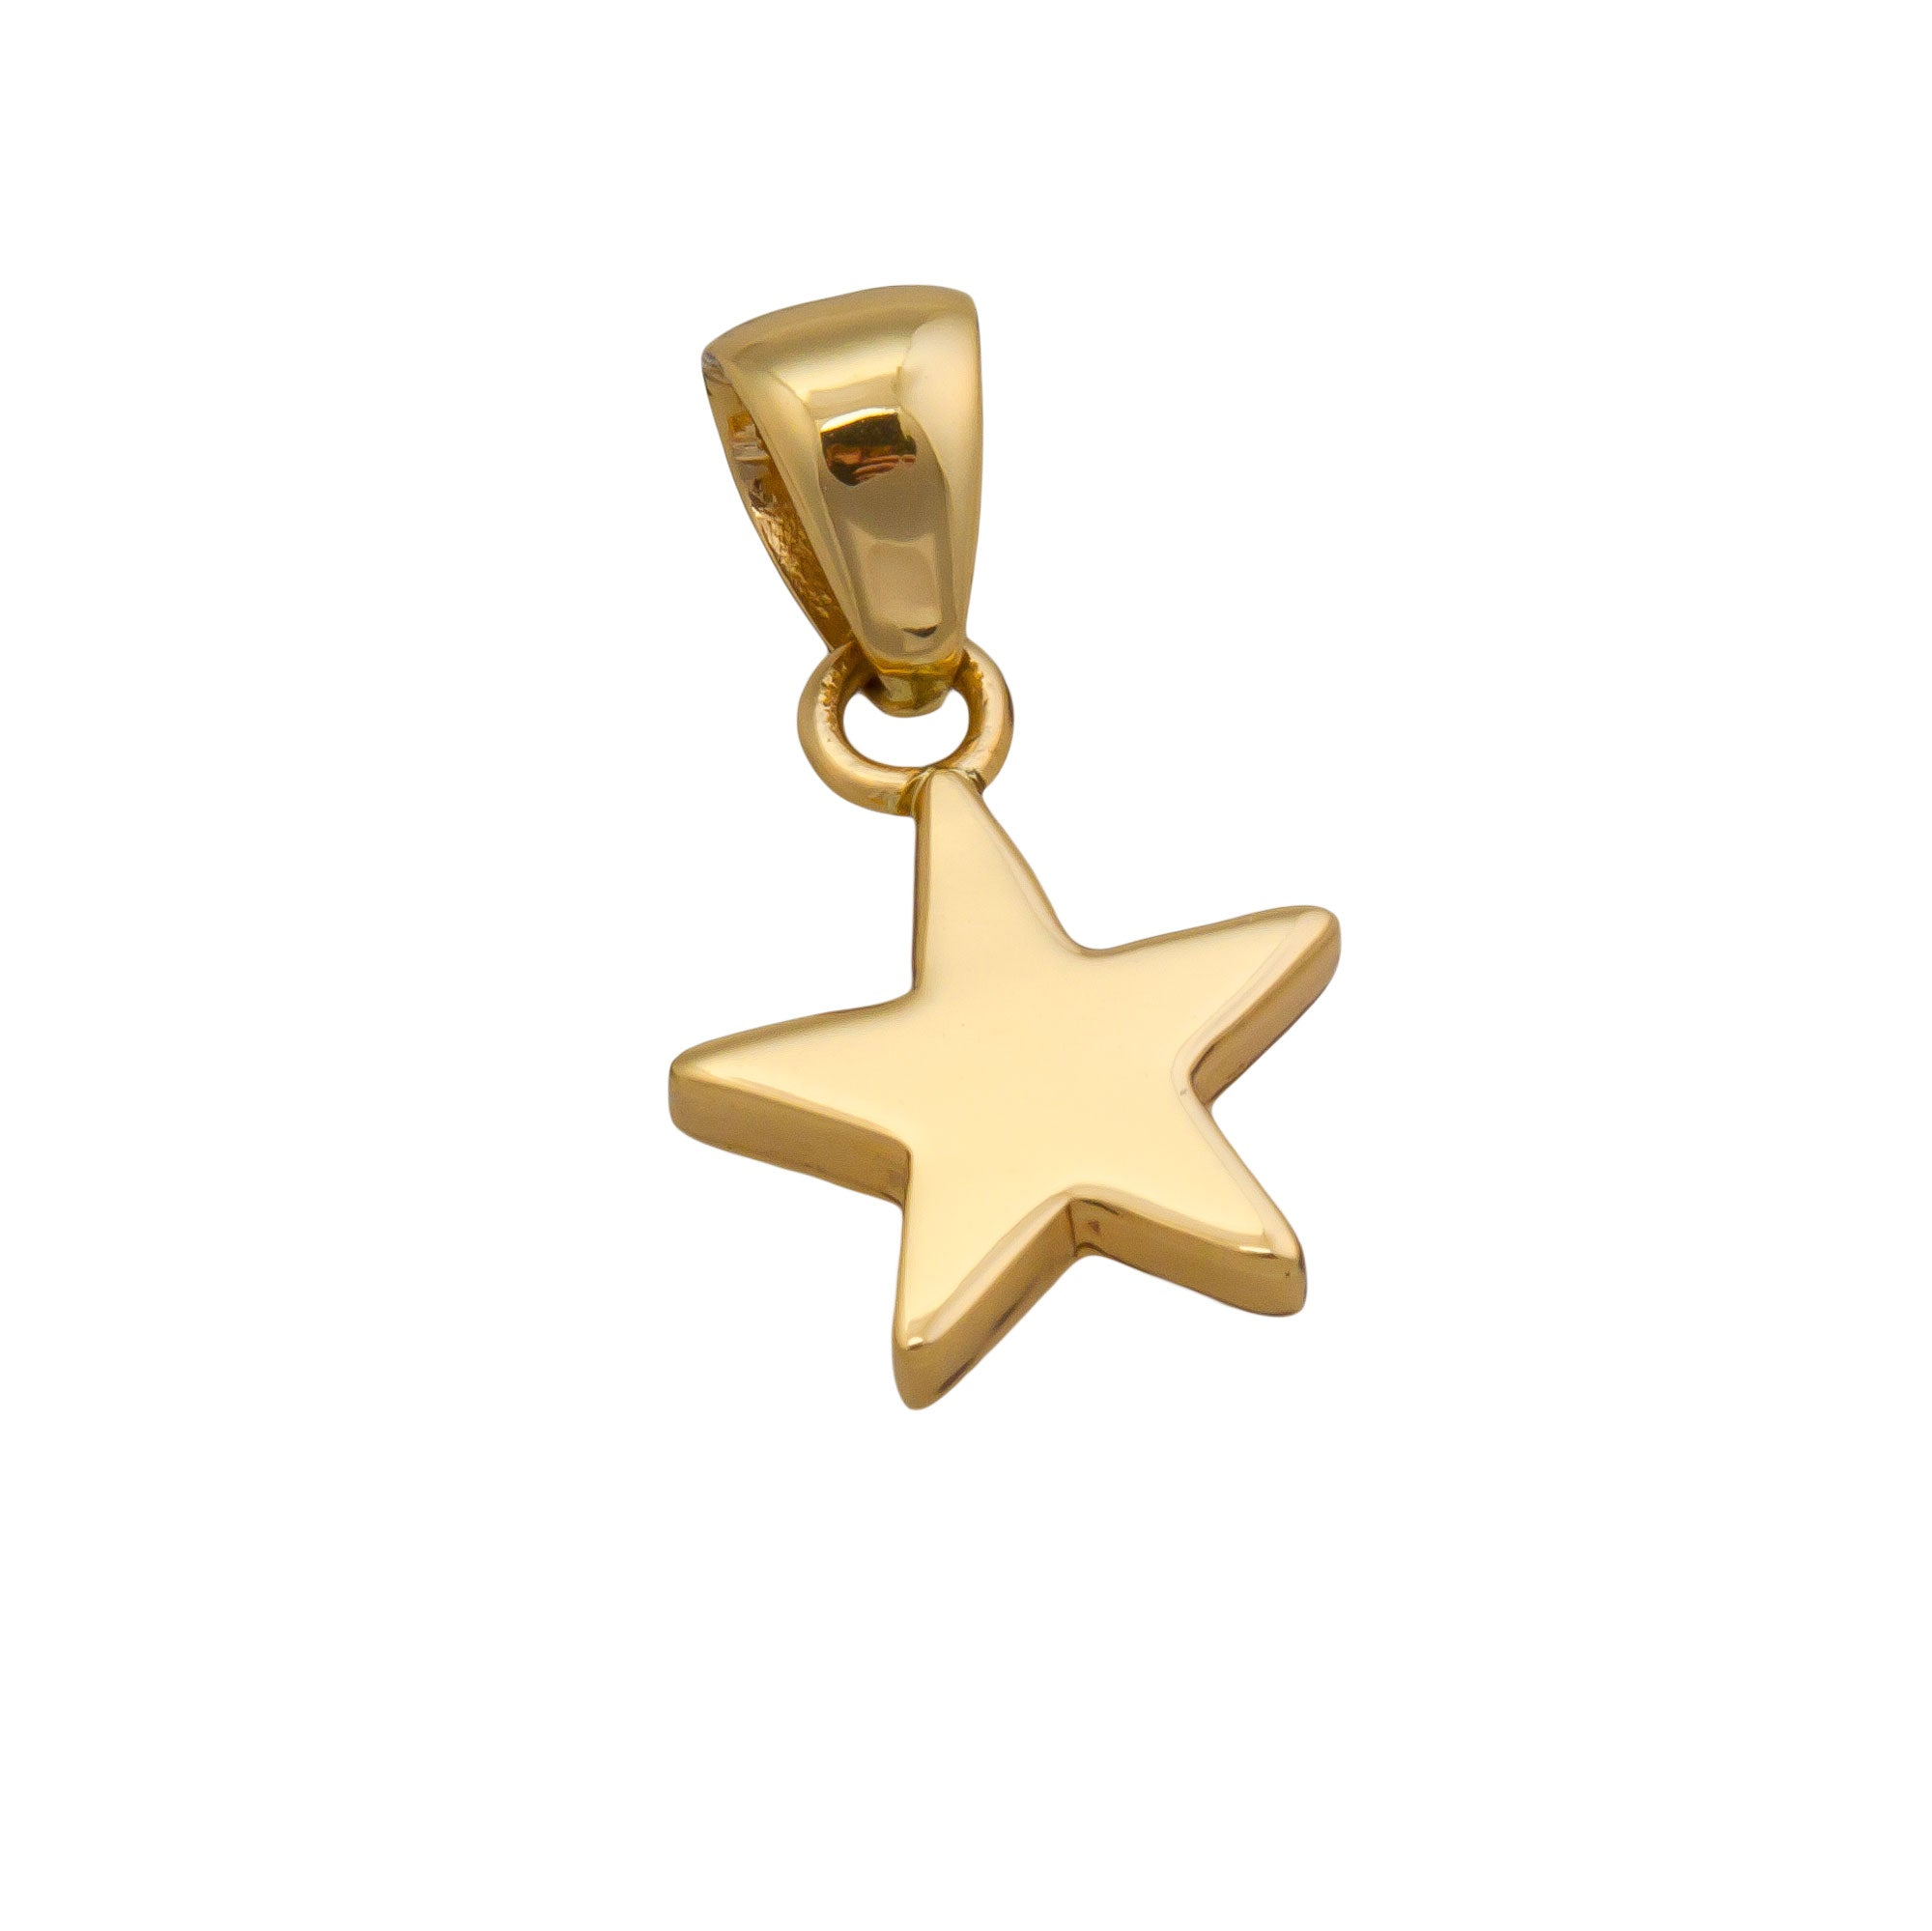 Alchemia Mini Star Pendant | Charles Albert Jewelry